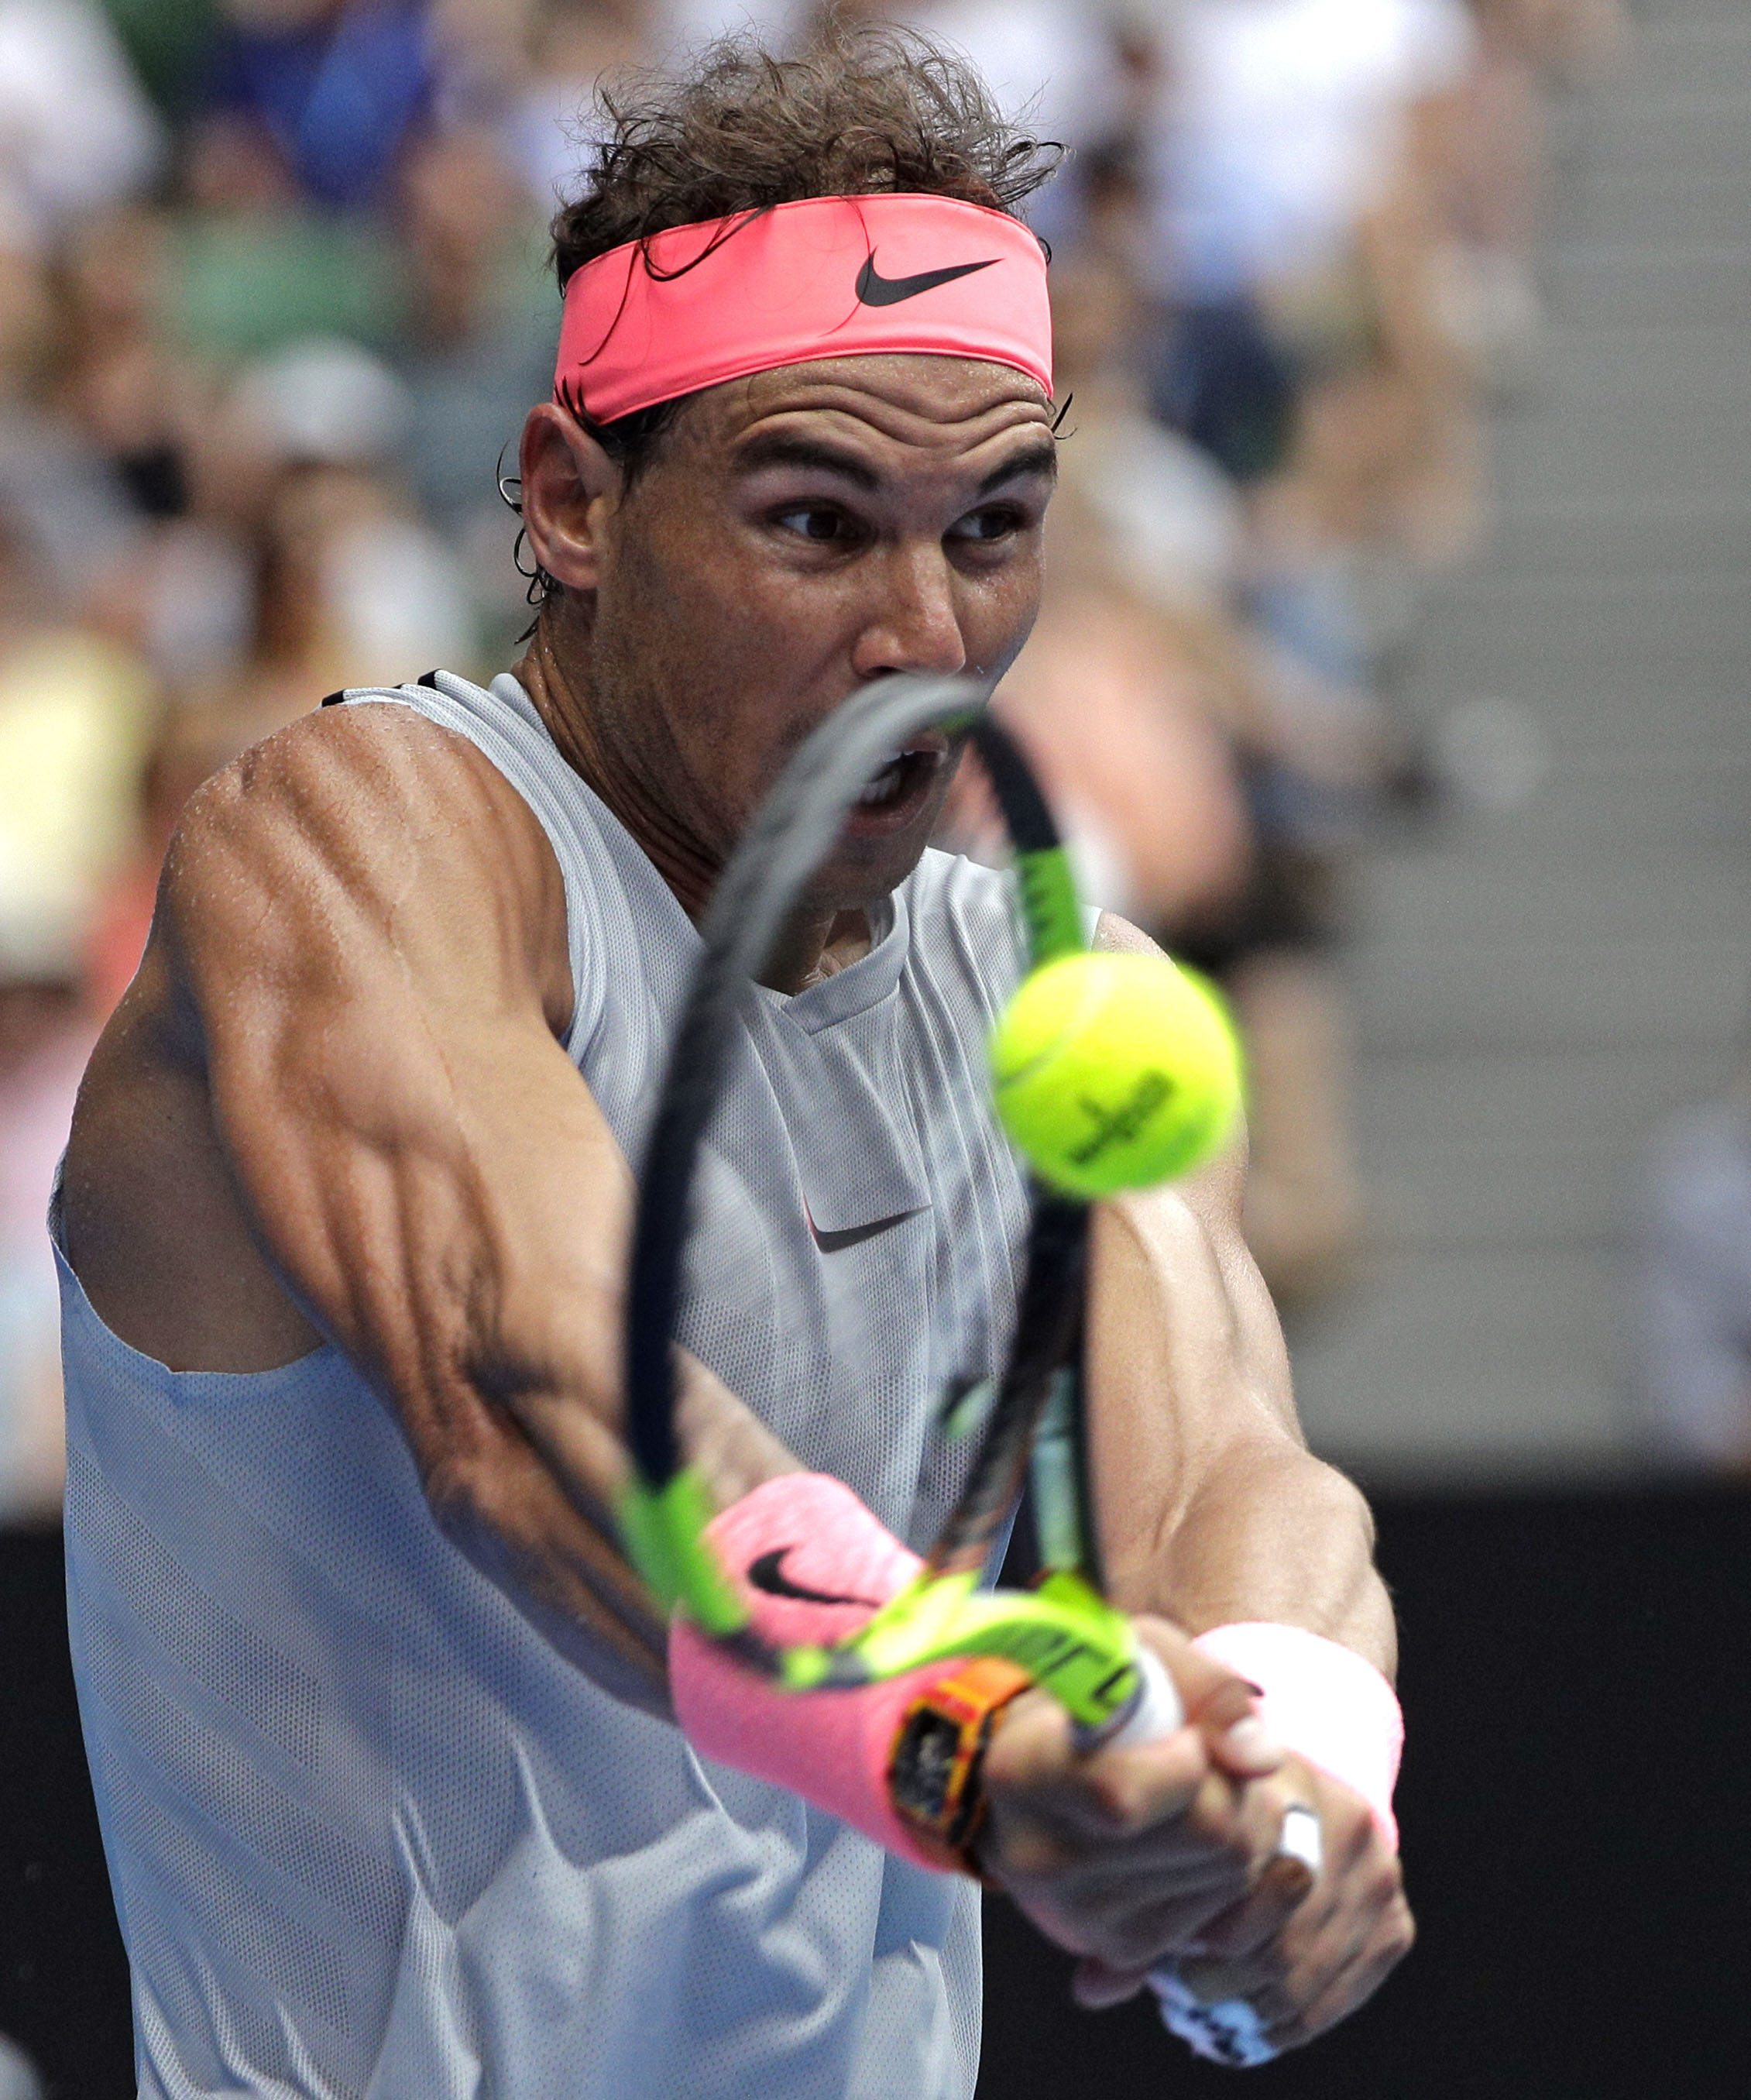 Nadal fights off gutsy Schwartzman to reach quarters